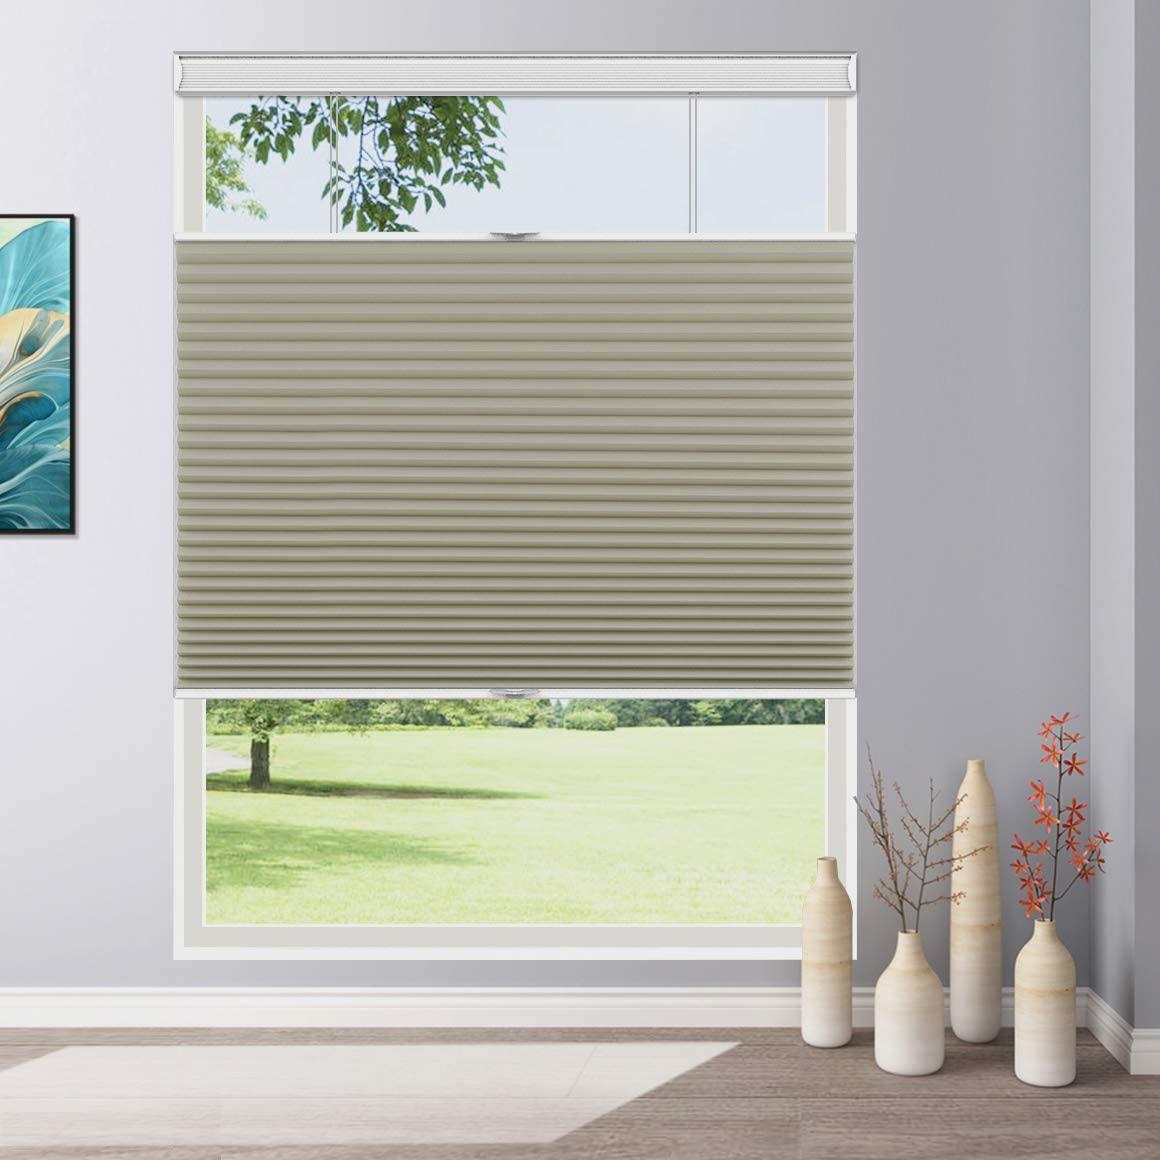 Keego Window Shades Top Down Bottom Up Cellular Blinds For Window Custom Blackout Cordless Thermal Honeycomb Shades And Blinds Apricot Any Size 24 48 Wide And 24 78 High Home Kitchen